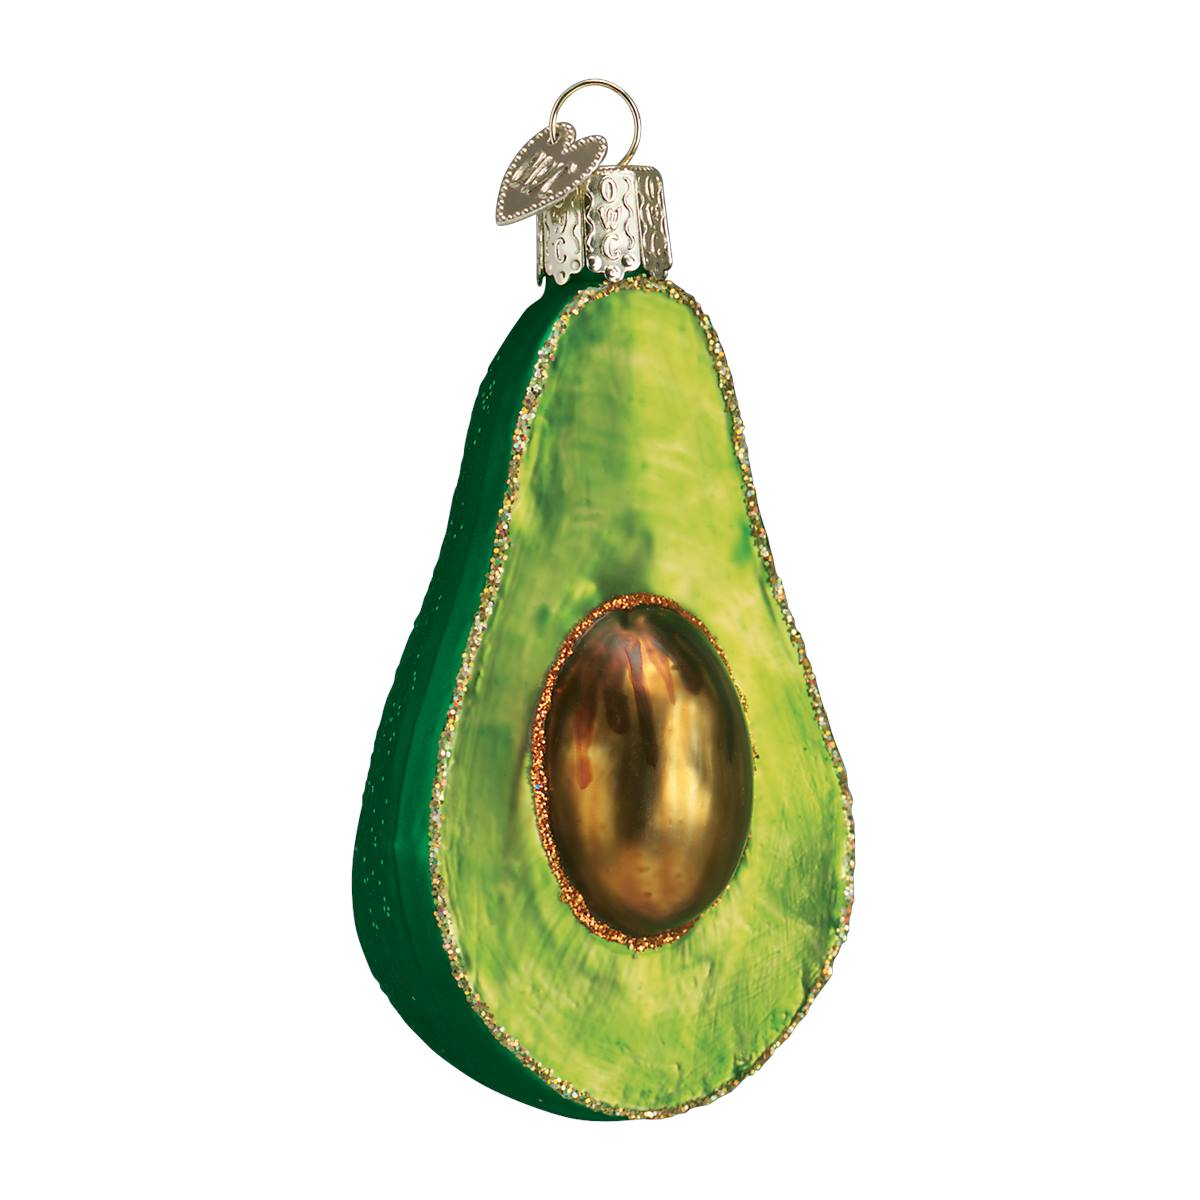 Margarita ornament - Avocado Ornament